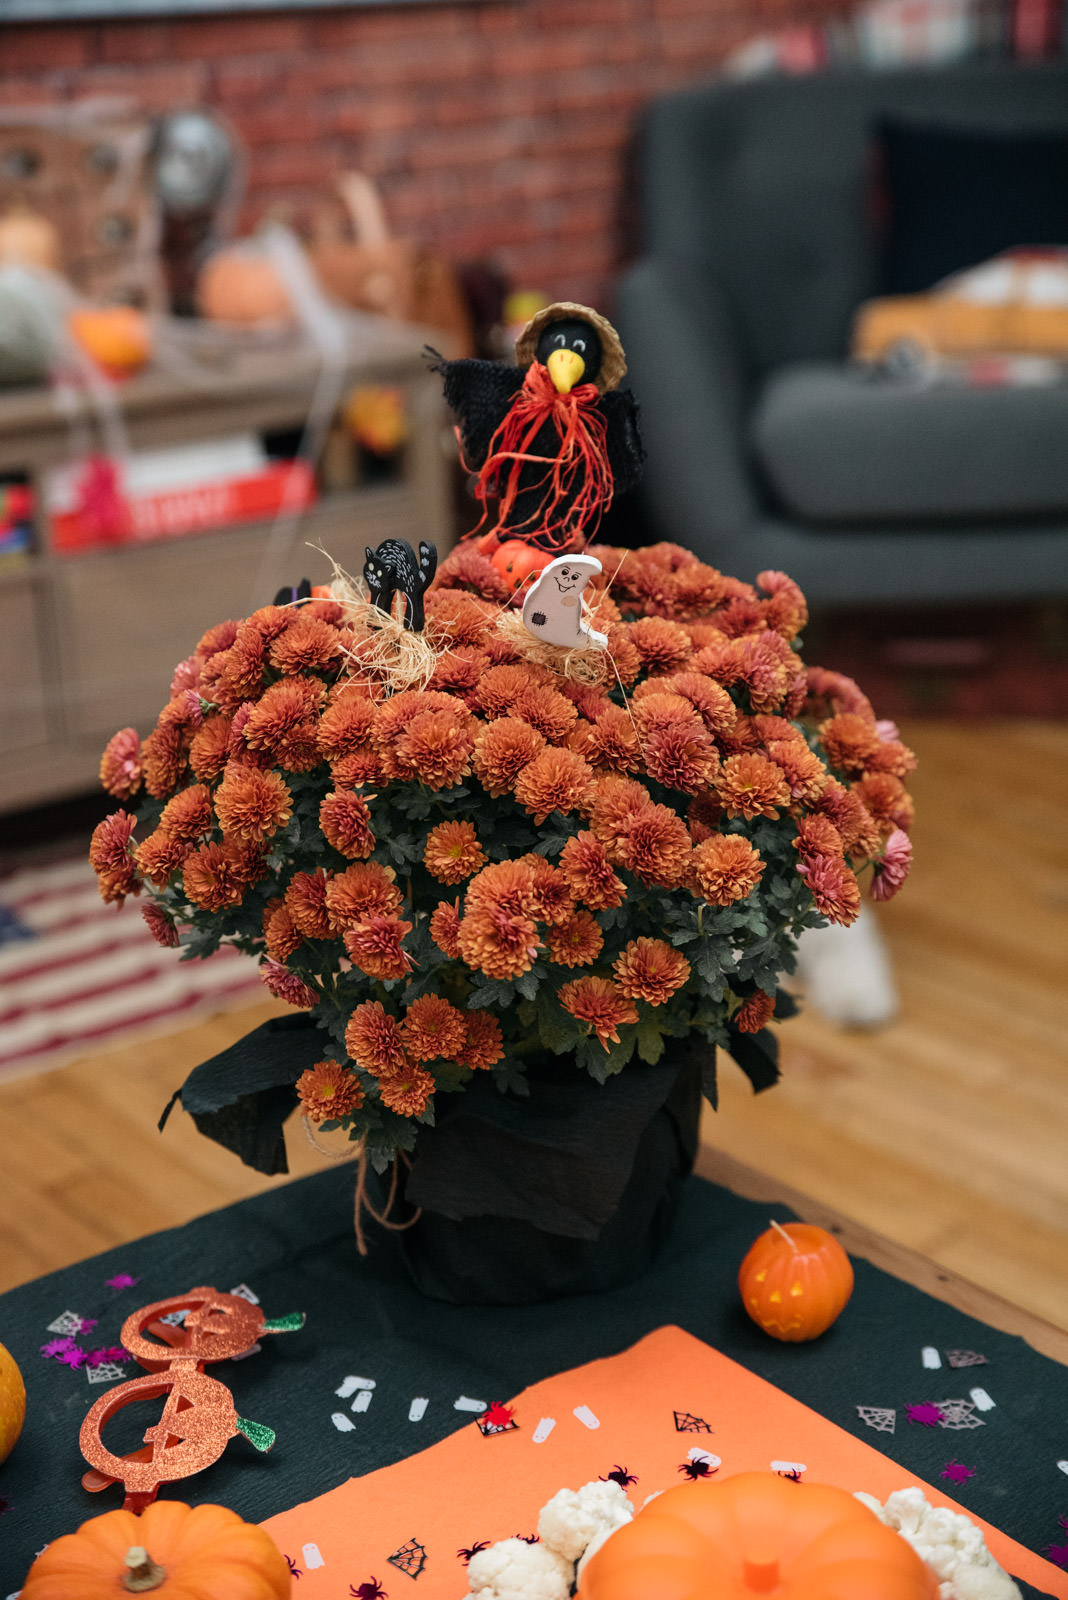 Blog-Mode-And-The-City-Lifestyle-Halloween-2017-3